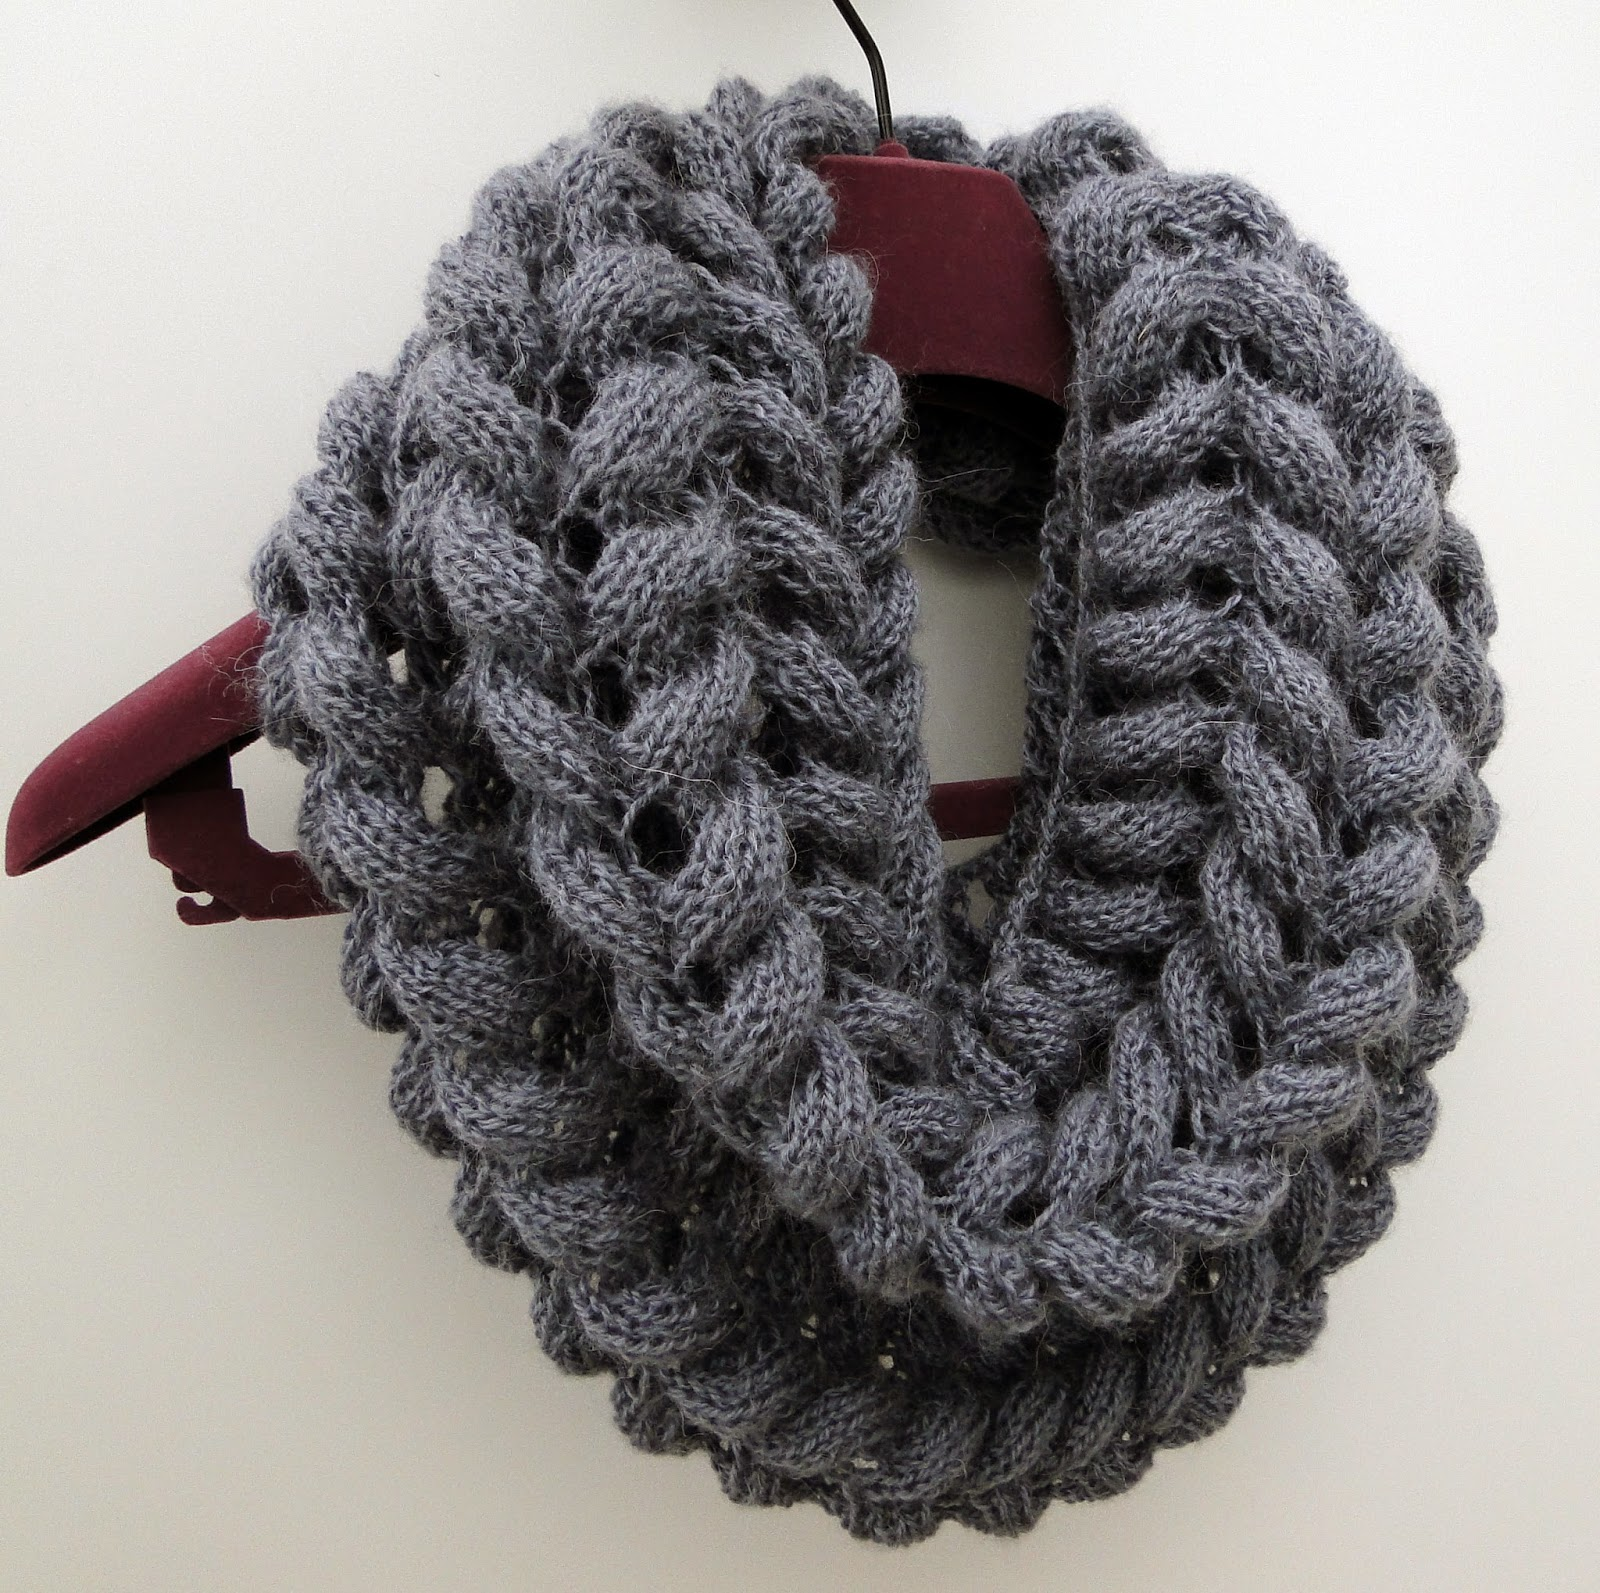 Easy Cowl Knitting Patterns : 3 Rabbits Patterns: Scarf Cowl Knitting Pattern